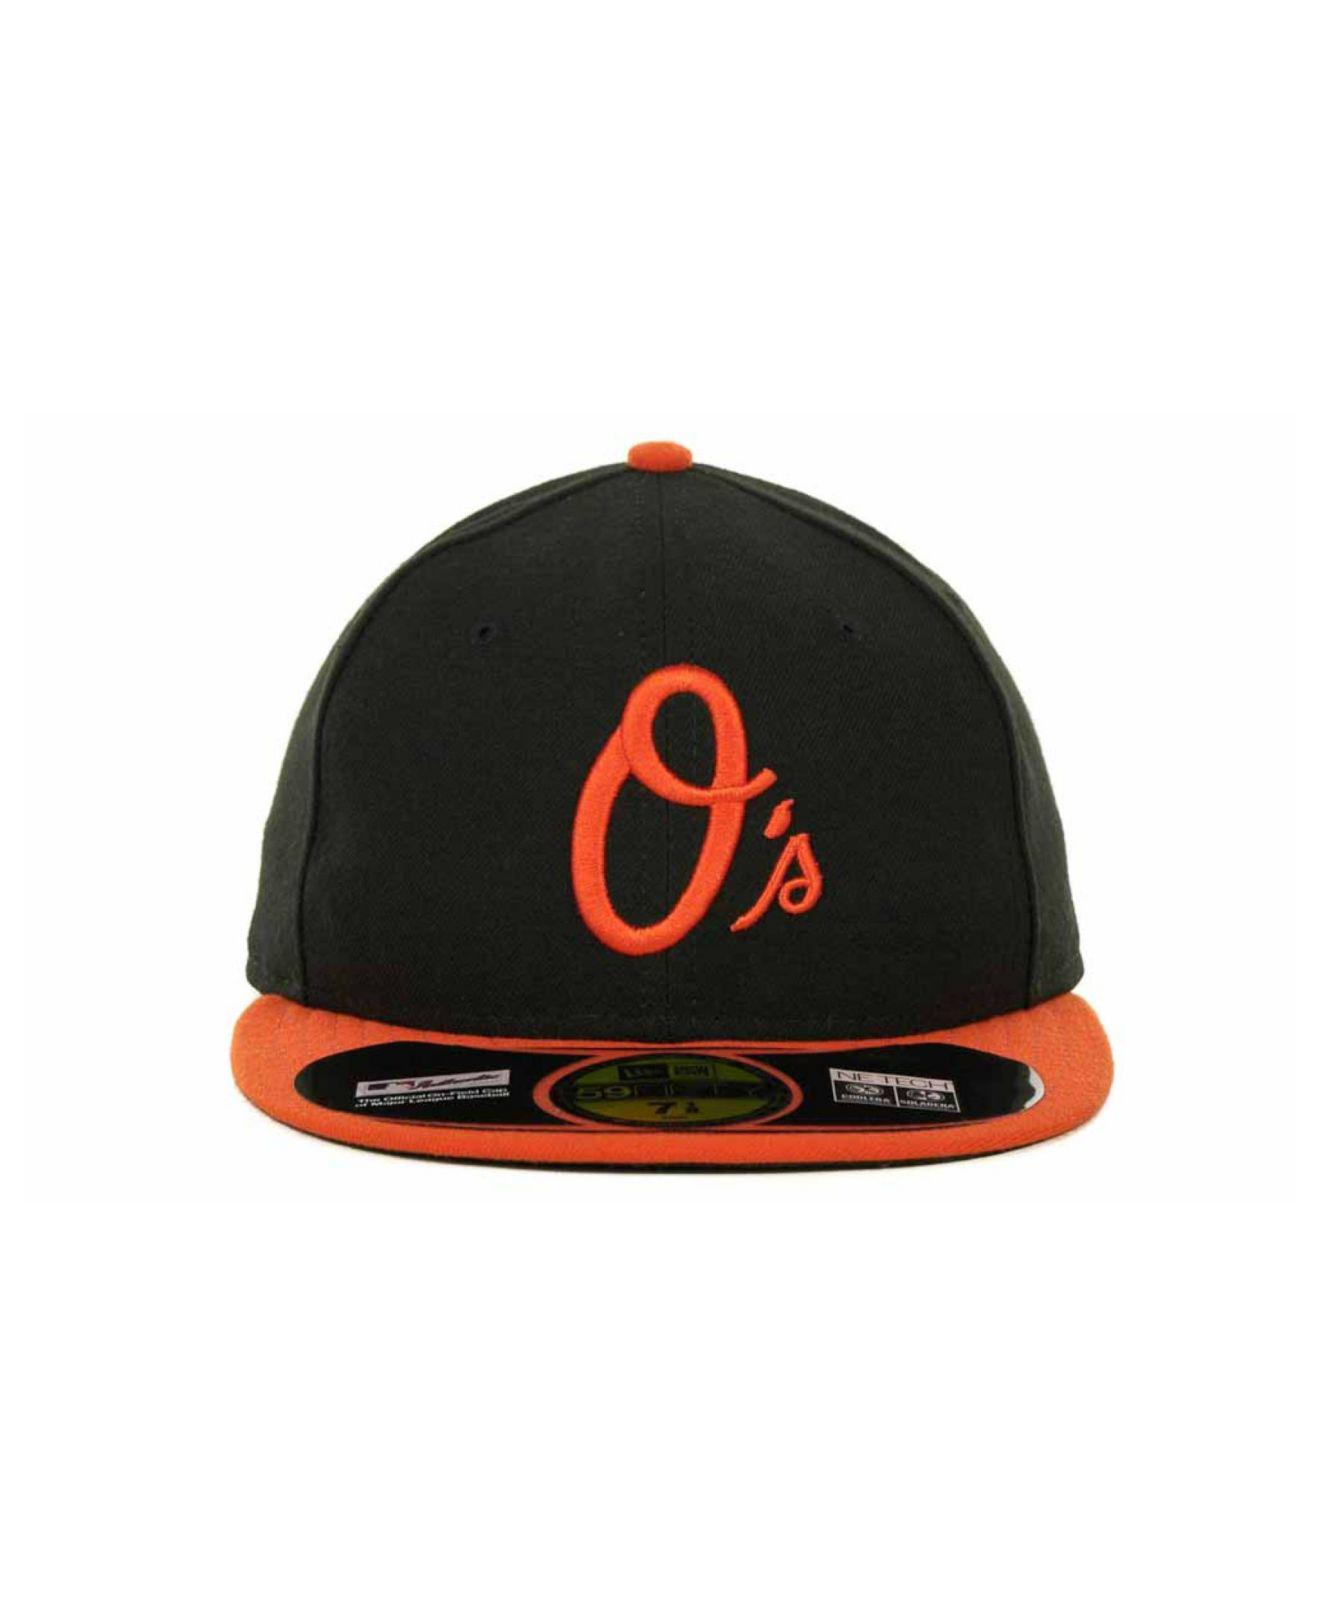 Lyst - KTZ Baltimore Orioles Authentic Collection 59fifty Hat in Black for  Men 32d9ef5c442d